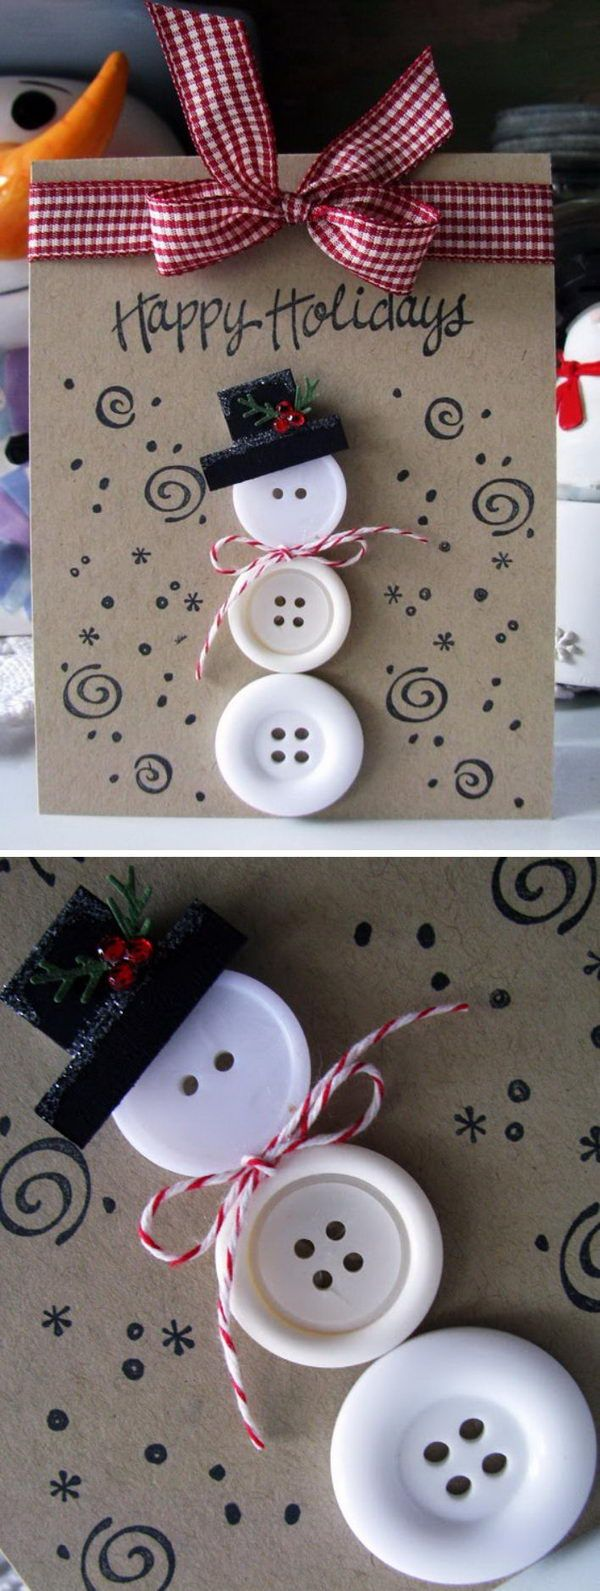 Just add a loop of twine to the top and this is a cute ornament!! Could make the cardstock circular. Could make it double sided. Or just make it as is.